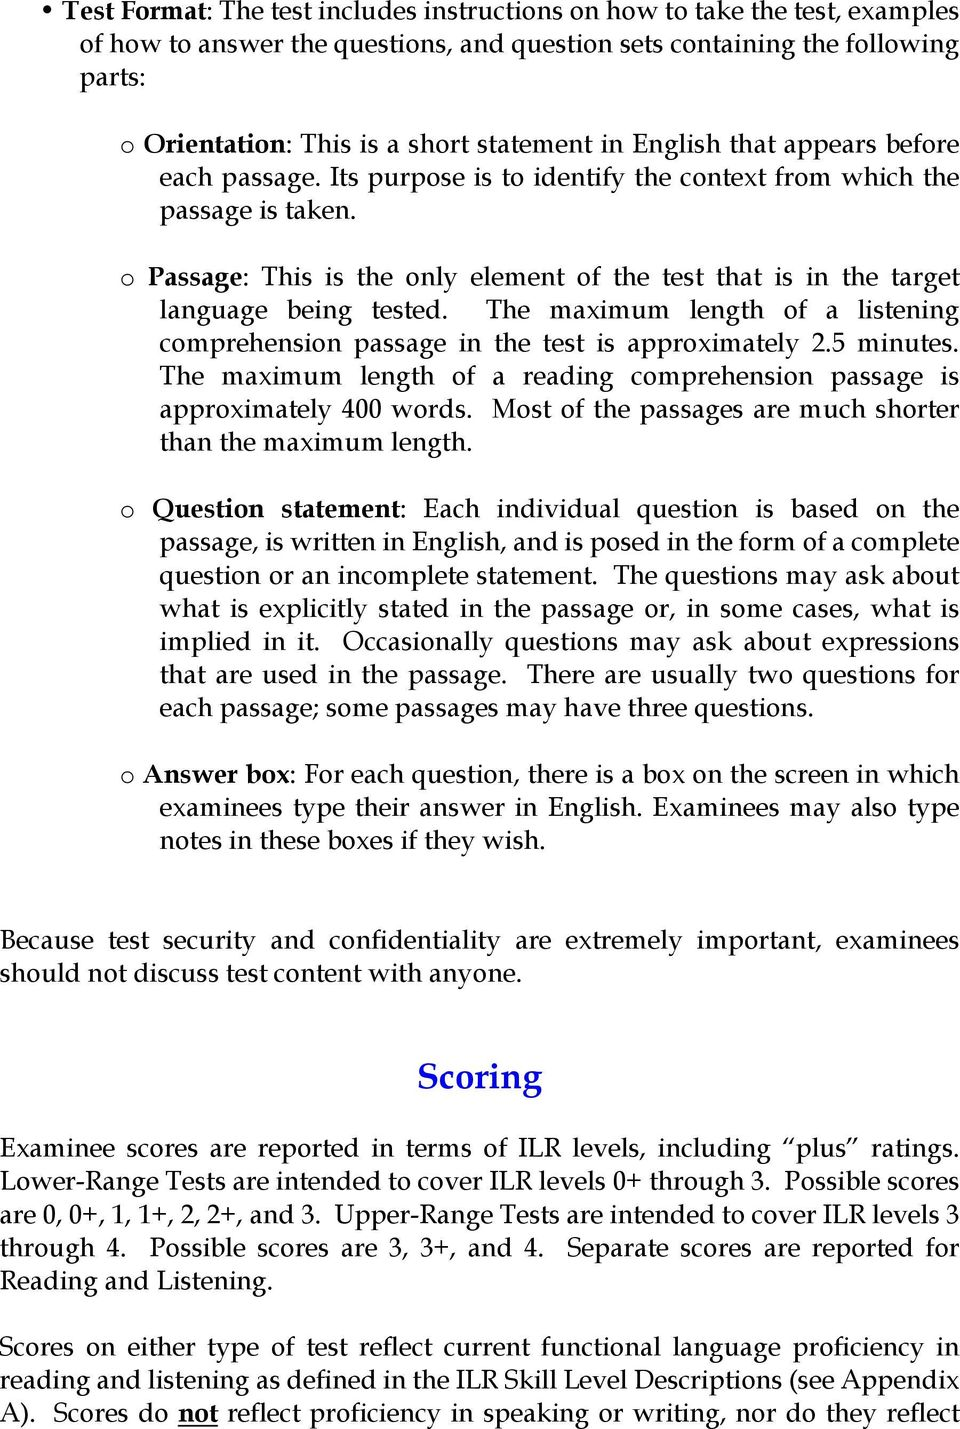 o Passage: This is the only element of the test that is in the target language being tested. The maximum length of a listening comprehension passage in the test is approximately 2.5 minutes.